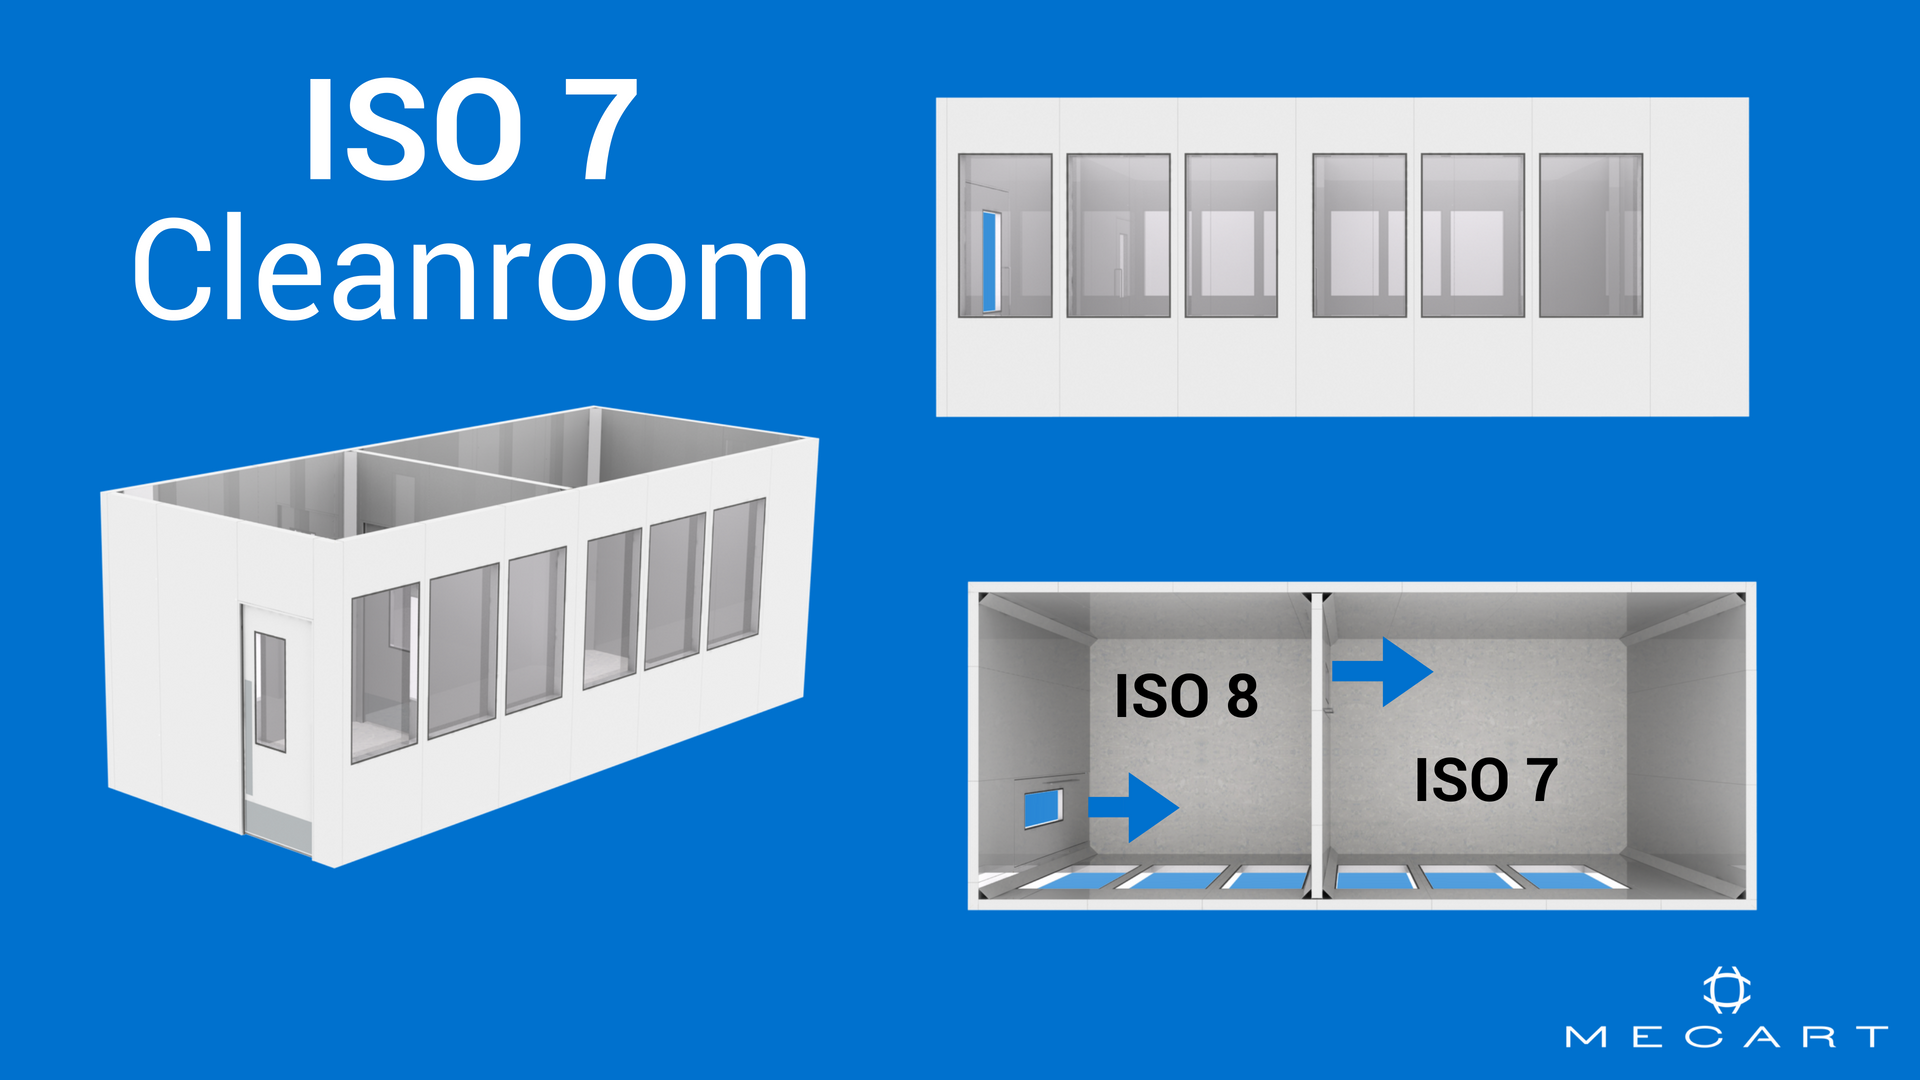 ISO 7 cleanroom